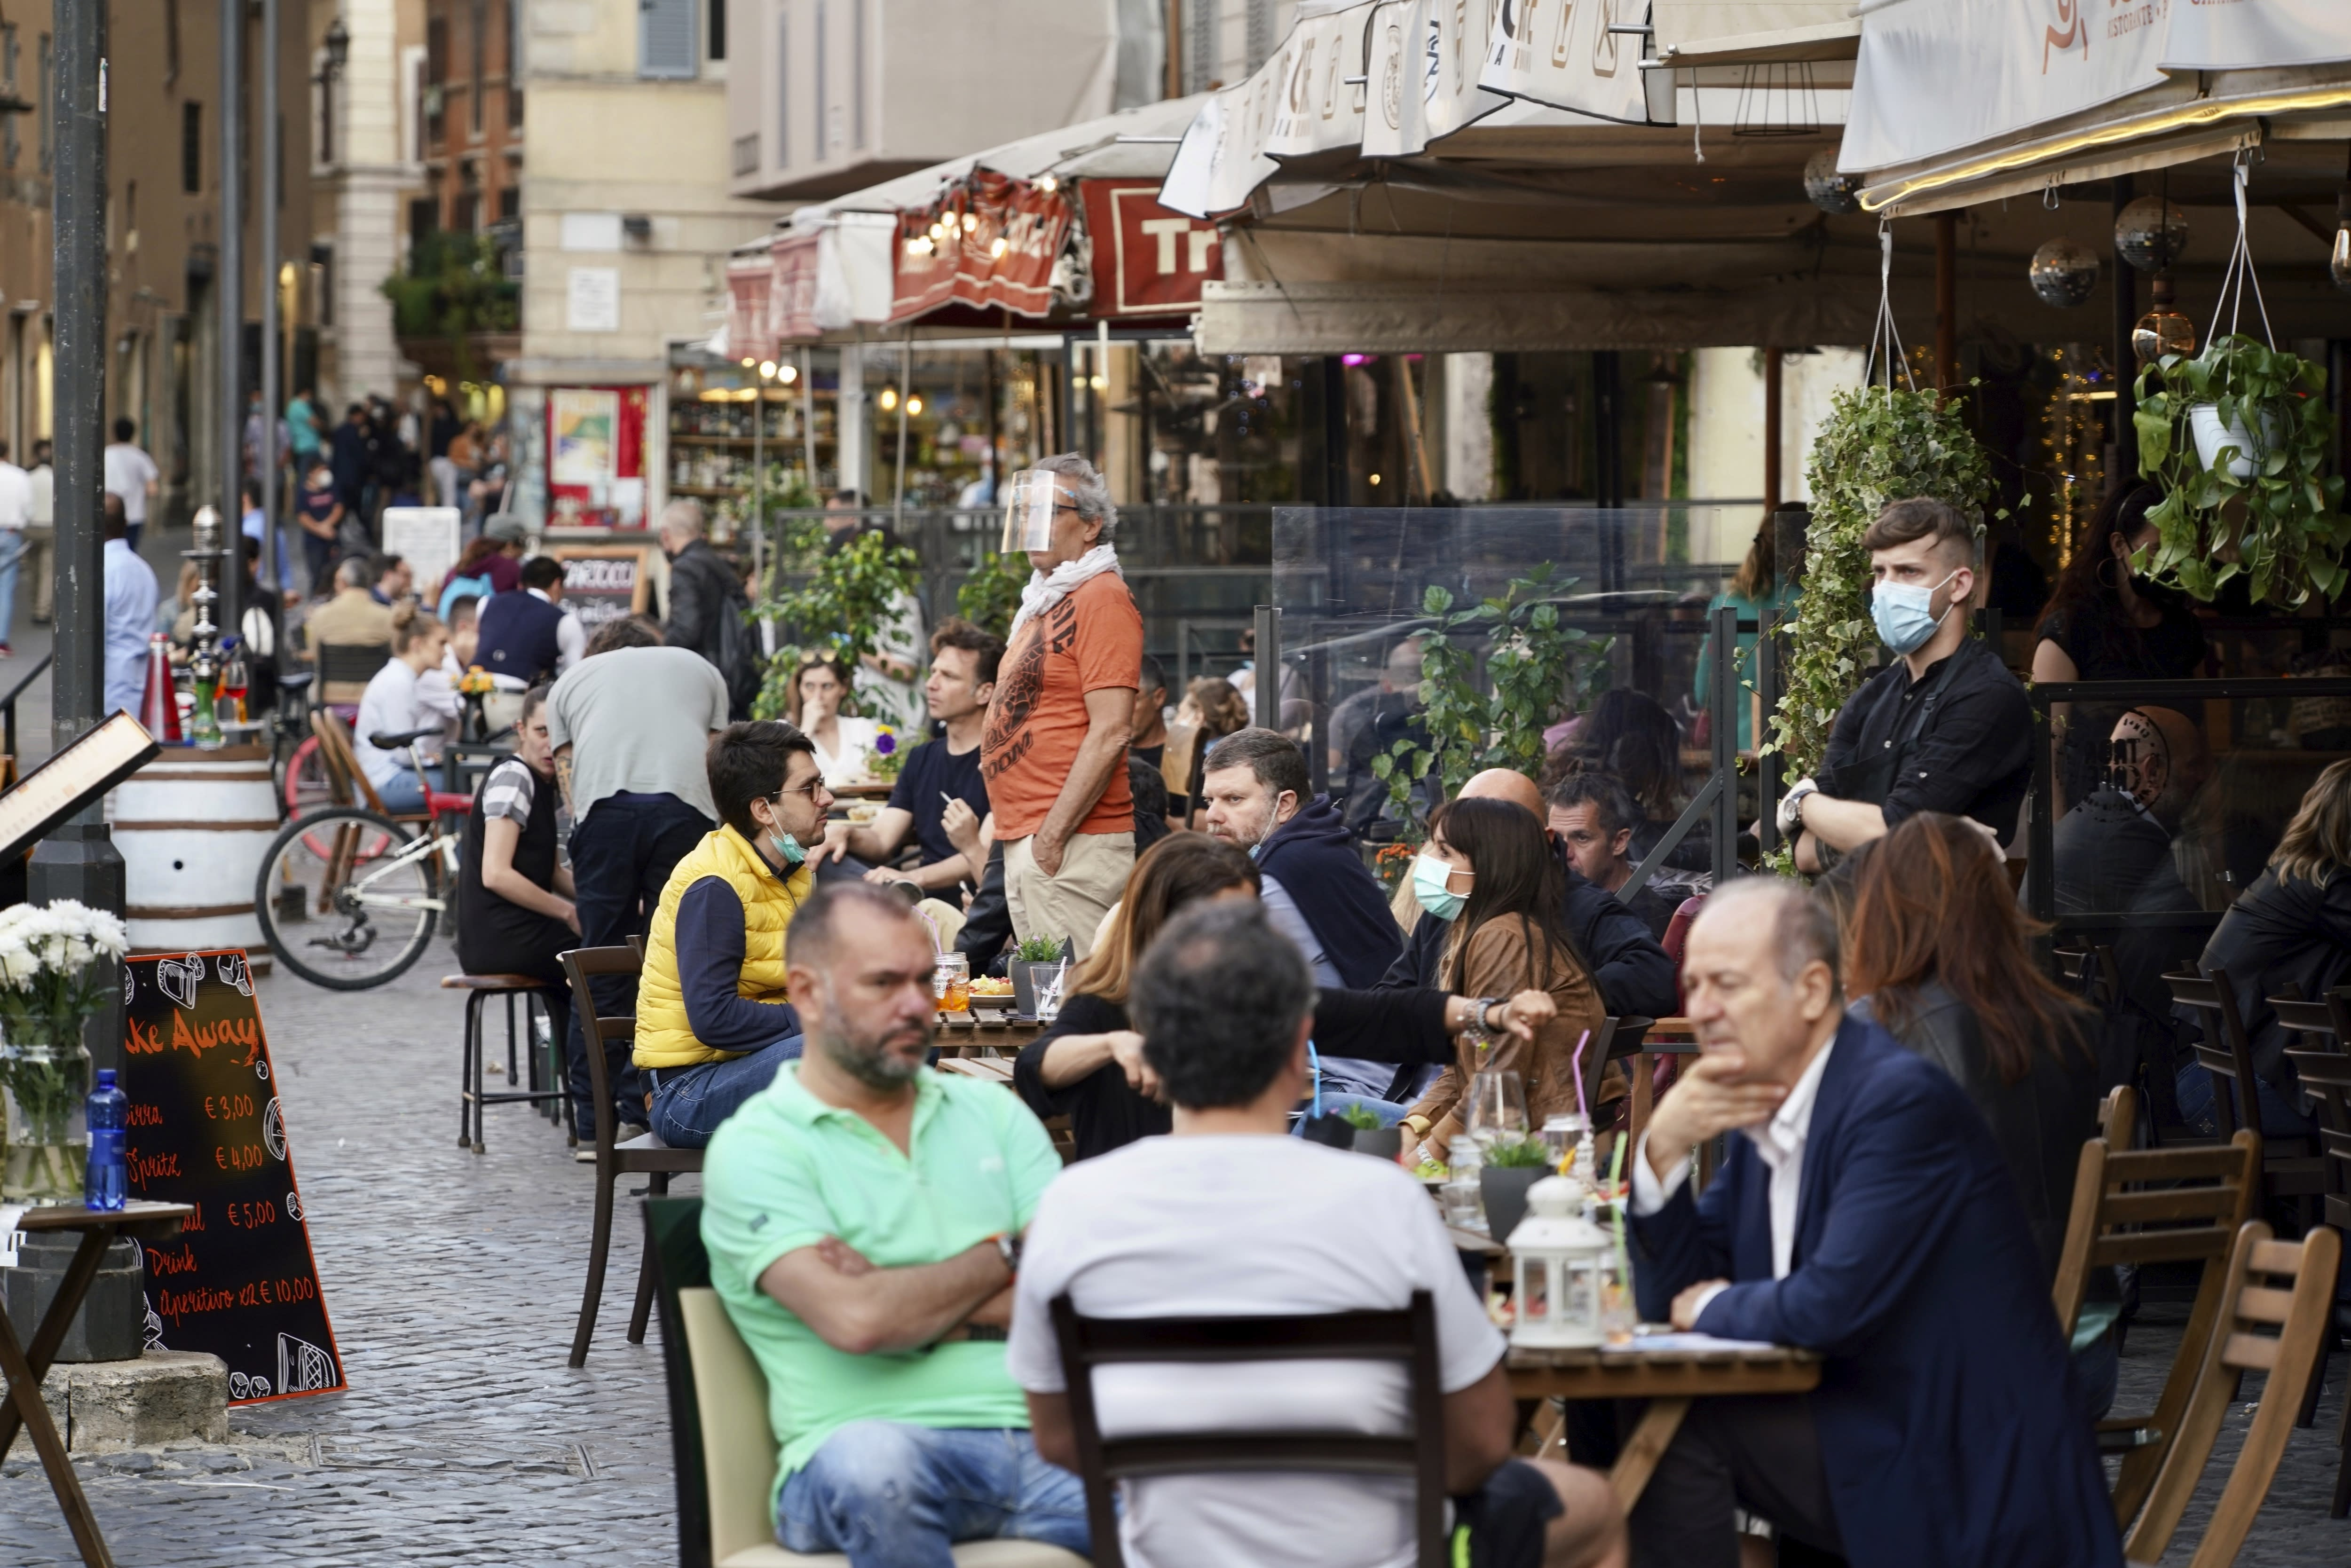 People sit at outdoor tables as they enjoy a drink on a Friday evening, in Rome's Campo dei Fiori square, Friday, May 22, 2020. Since Monday, Italians have regained freedoms, including being able to sit down at a cafe or restaurant, shop in all retail stores or attend church services such as Mass after a partial lifting of restriction measures aimed at containing the spread of COVID-19. (AP Photo/Andrew Medichini)